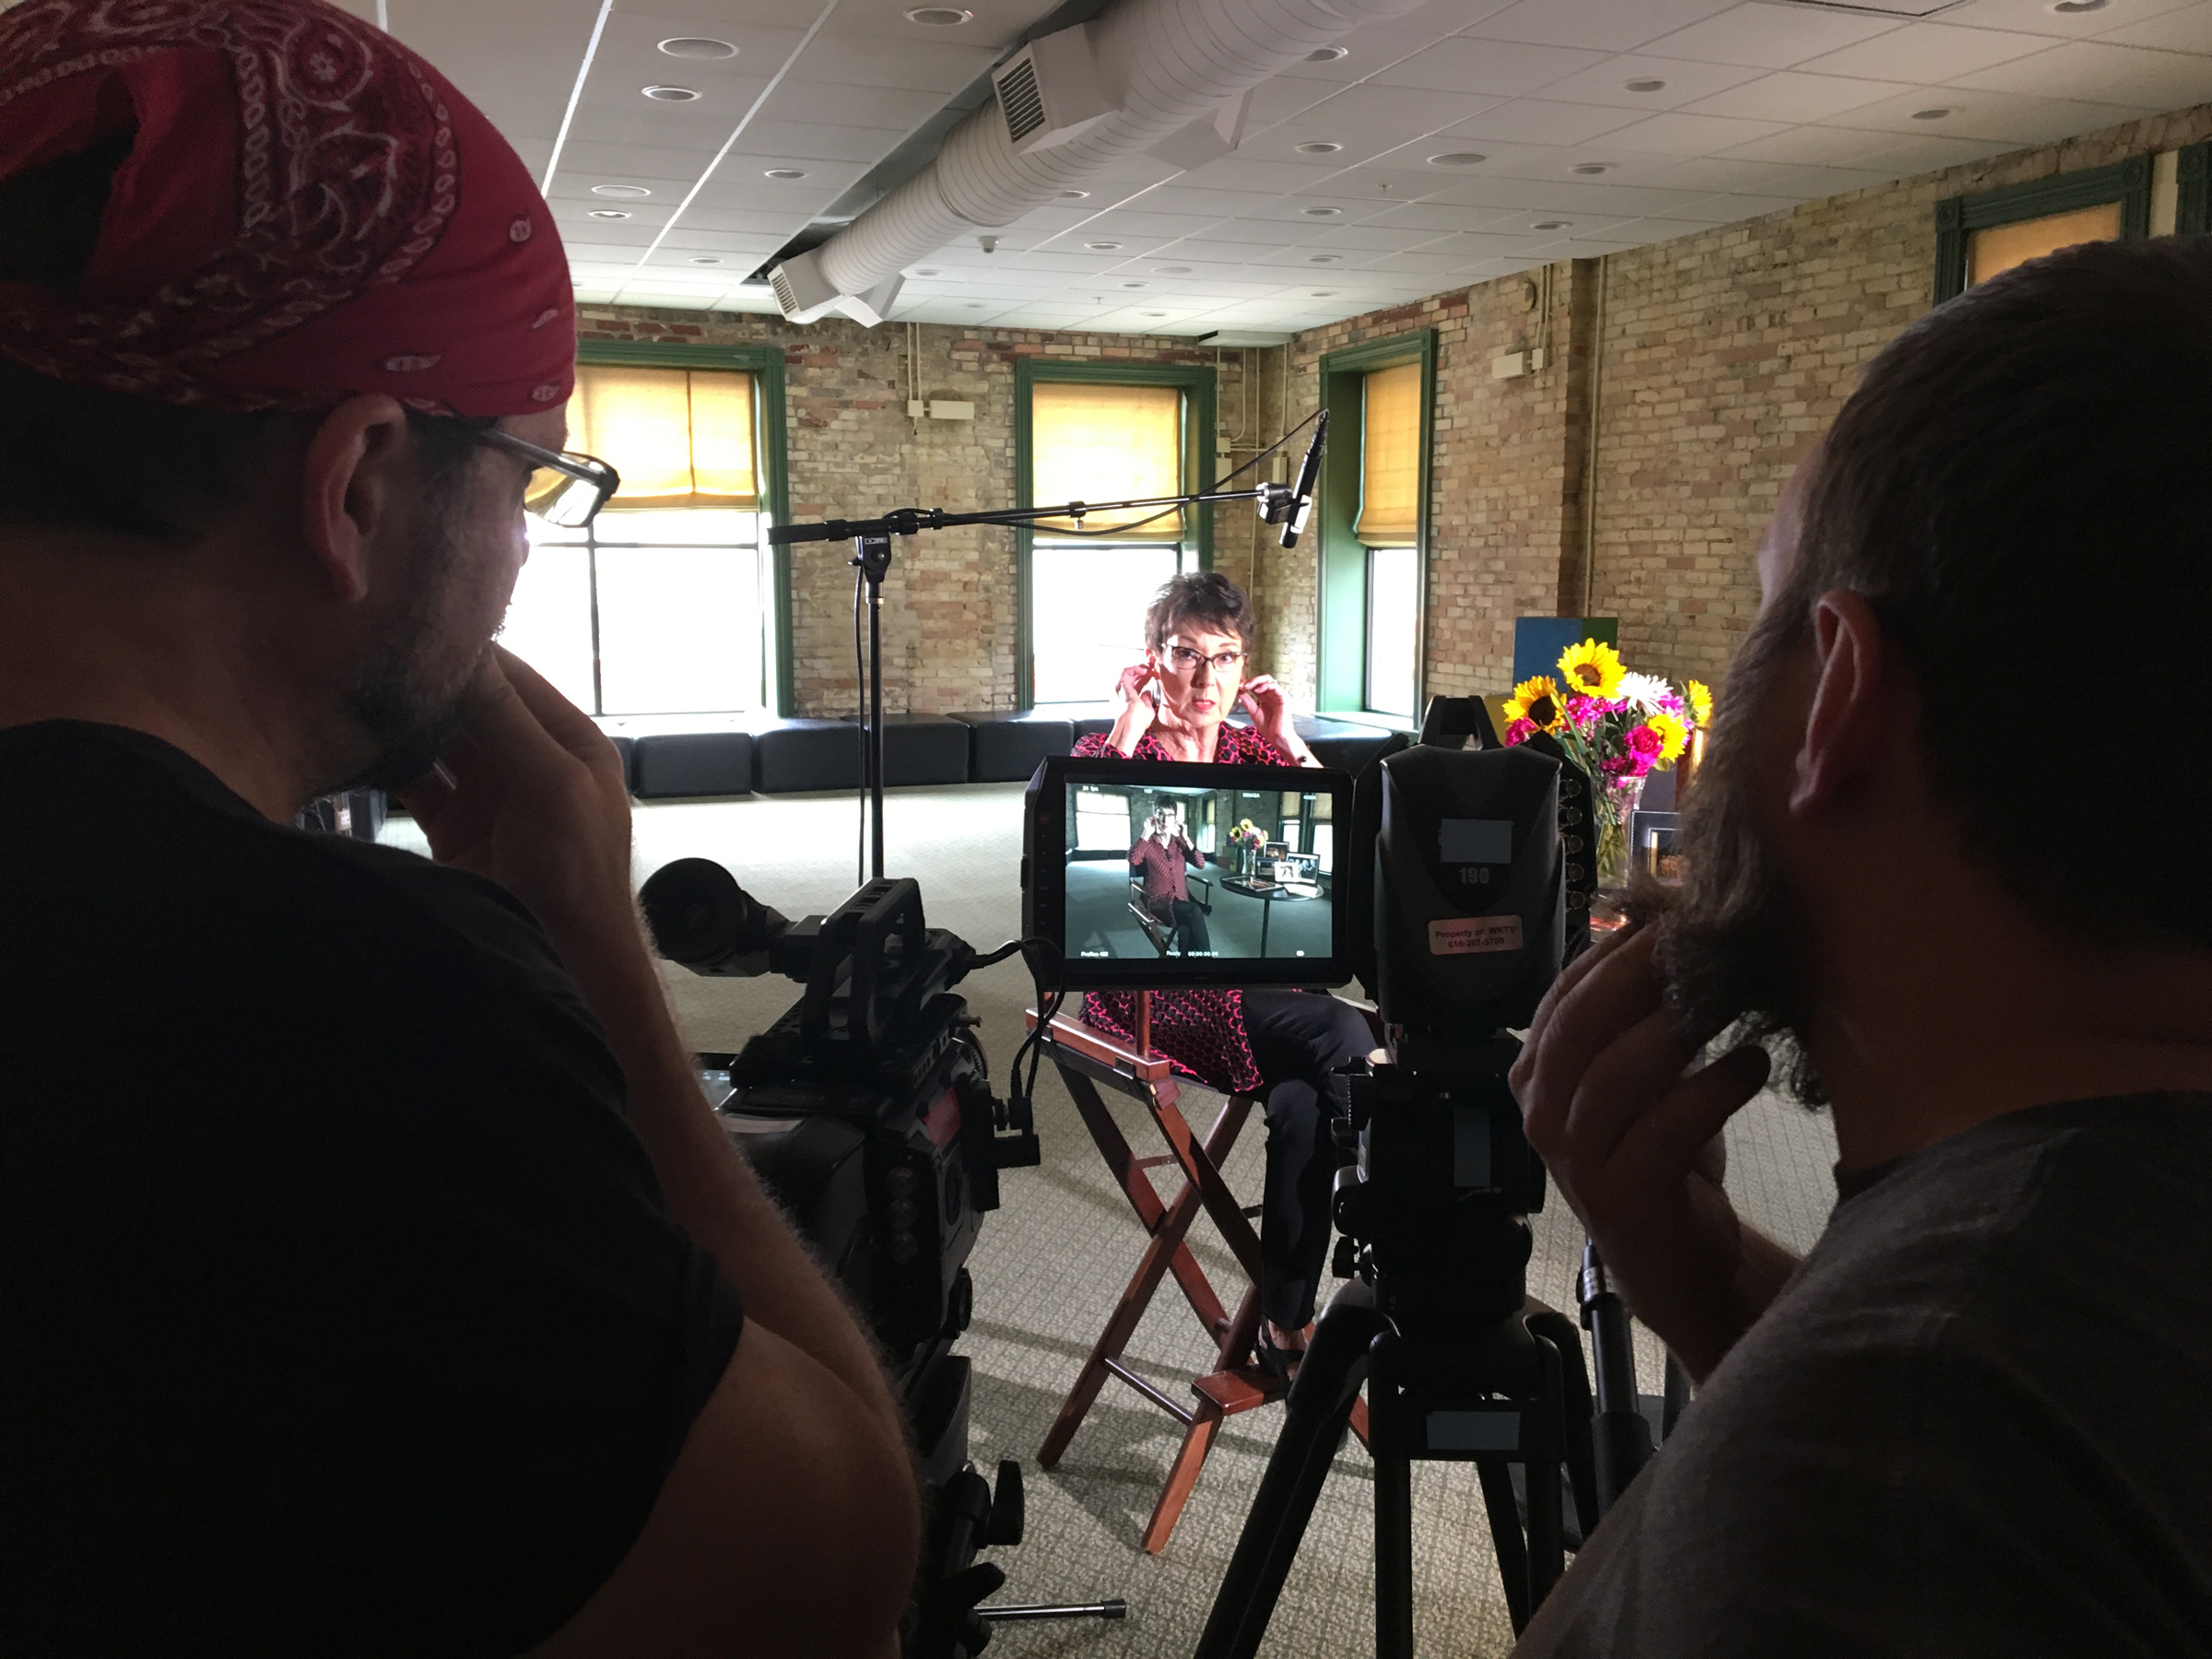 Fubble Entertainment is producing a documentary chronicling Grand Rapids' community theater.